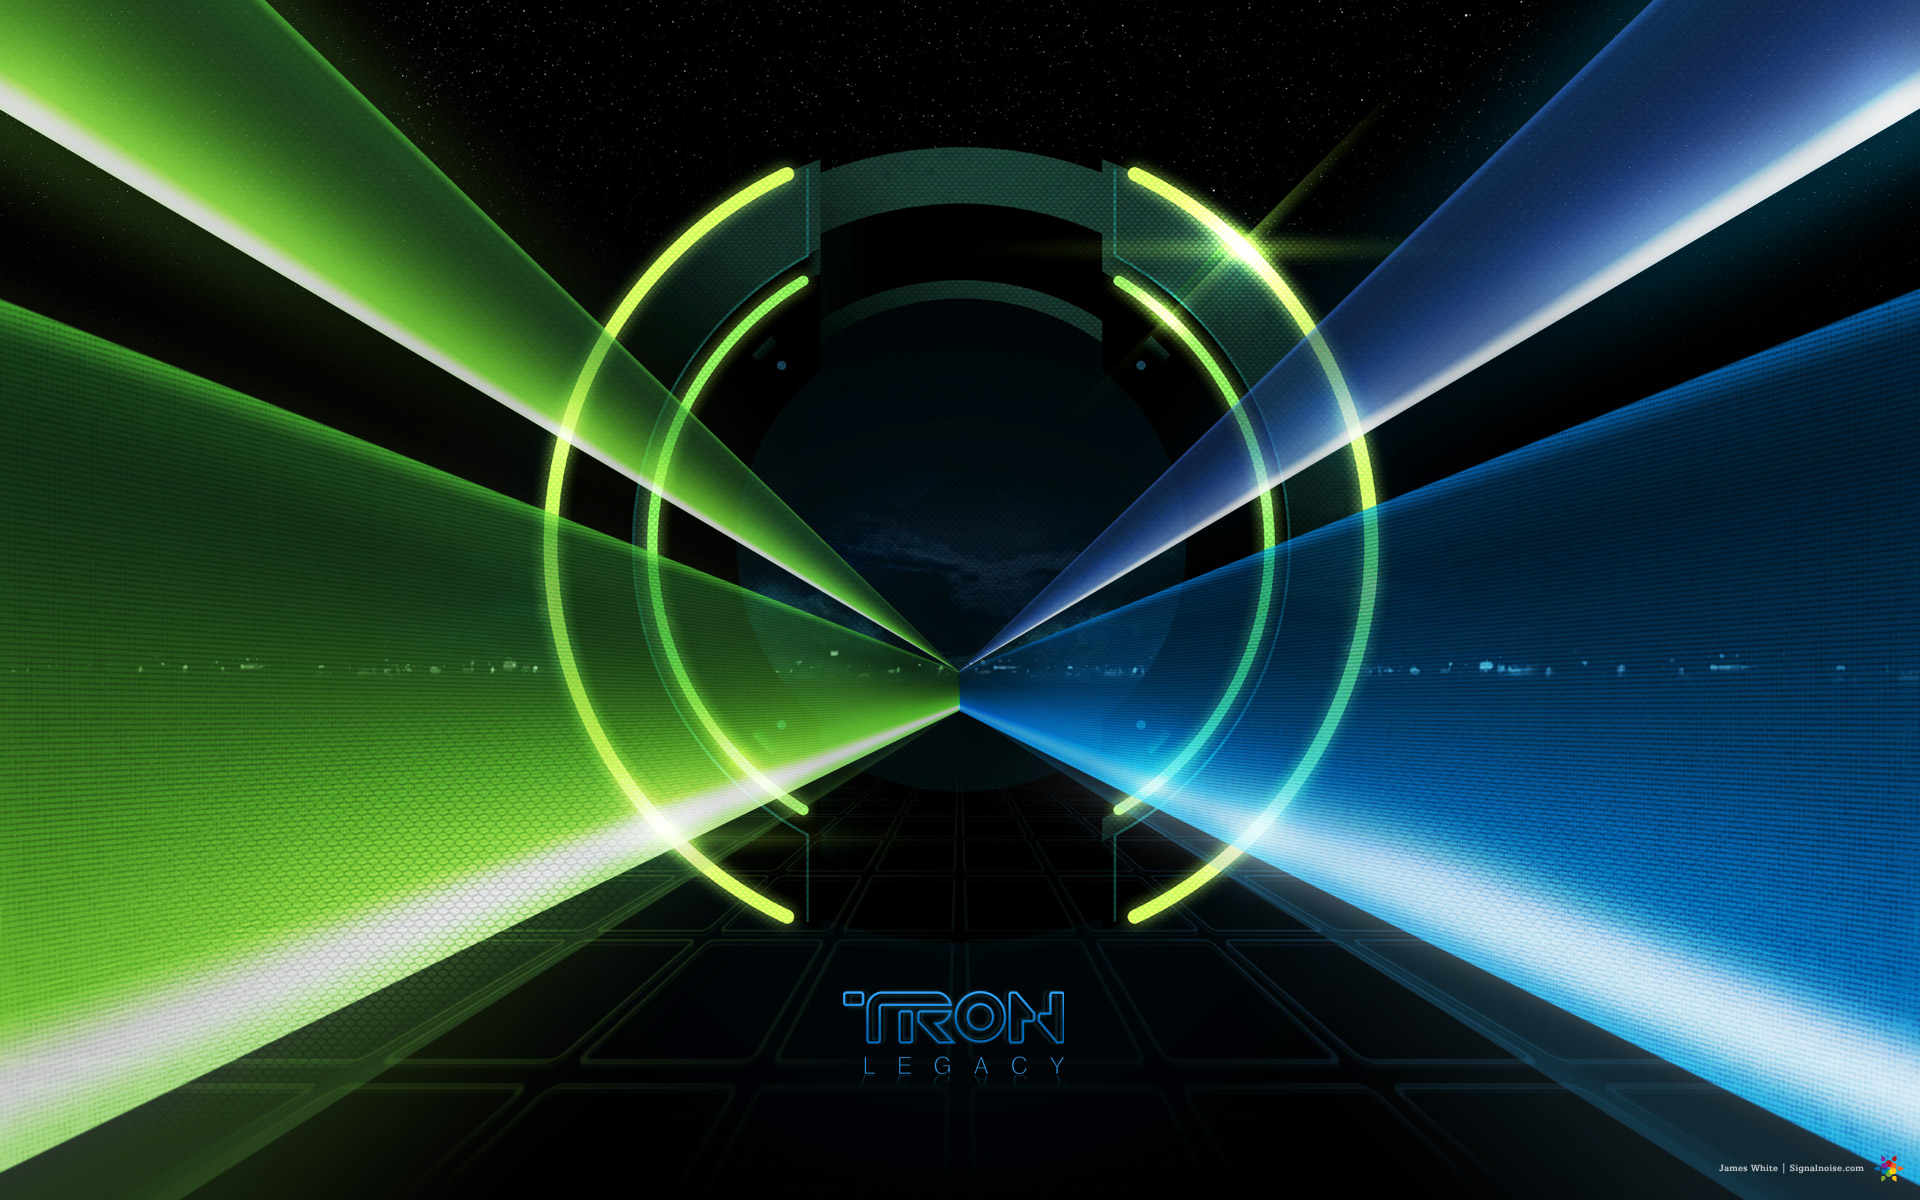 Wallpaper 3d Bike Tron Legacy Download: Tron Legacy Tunnel Wallpapers